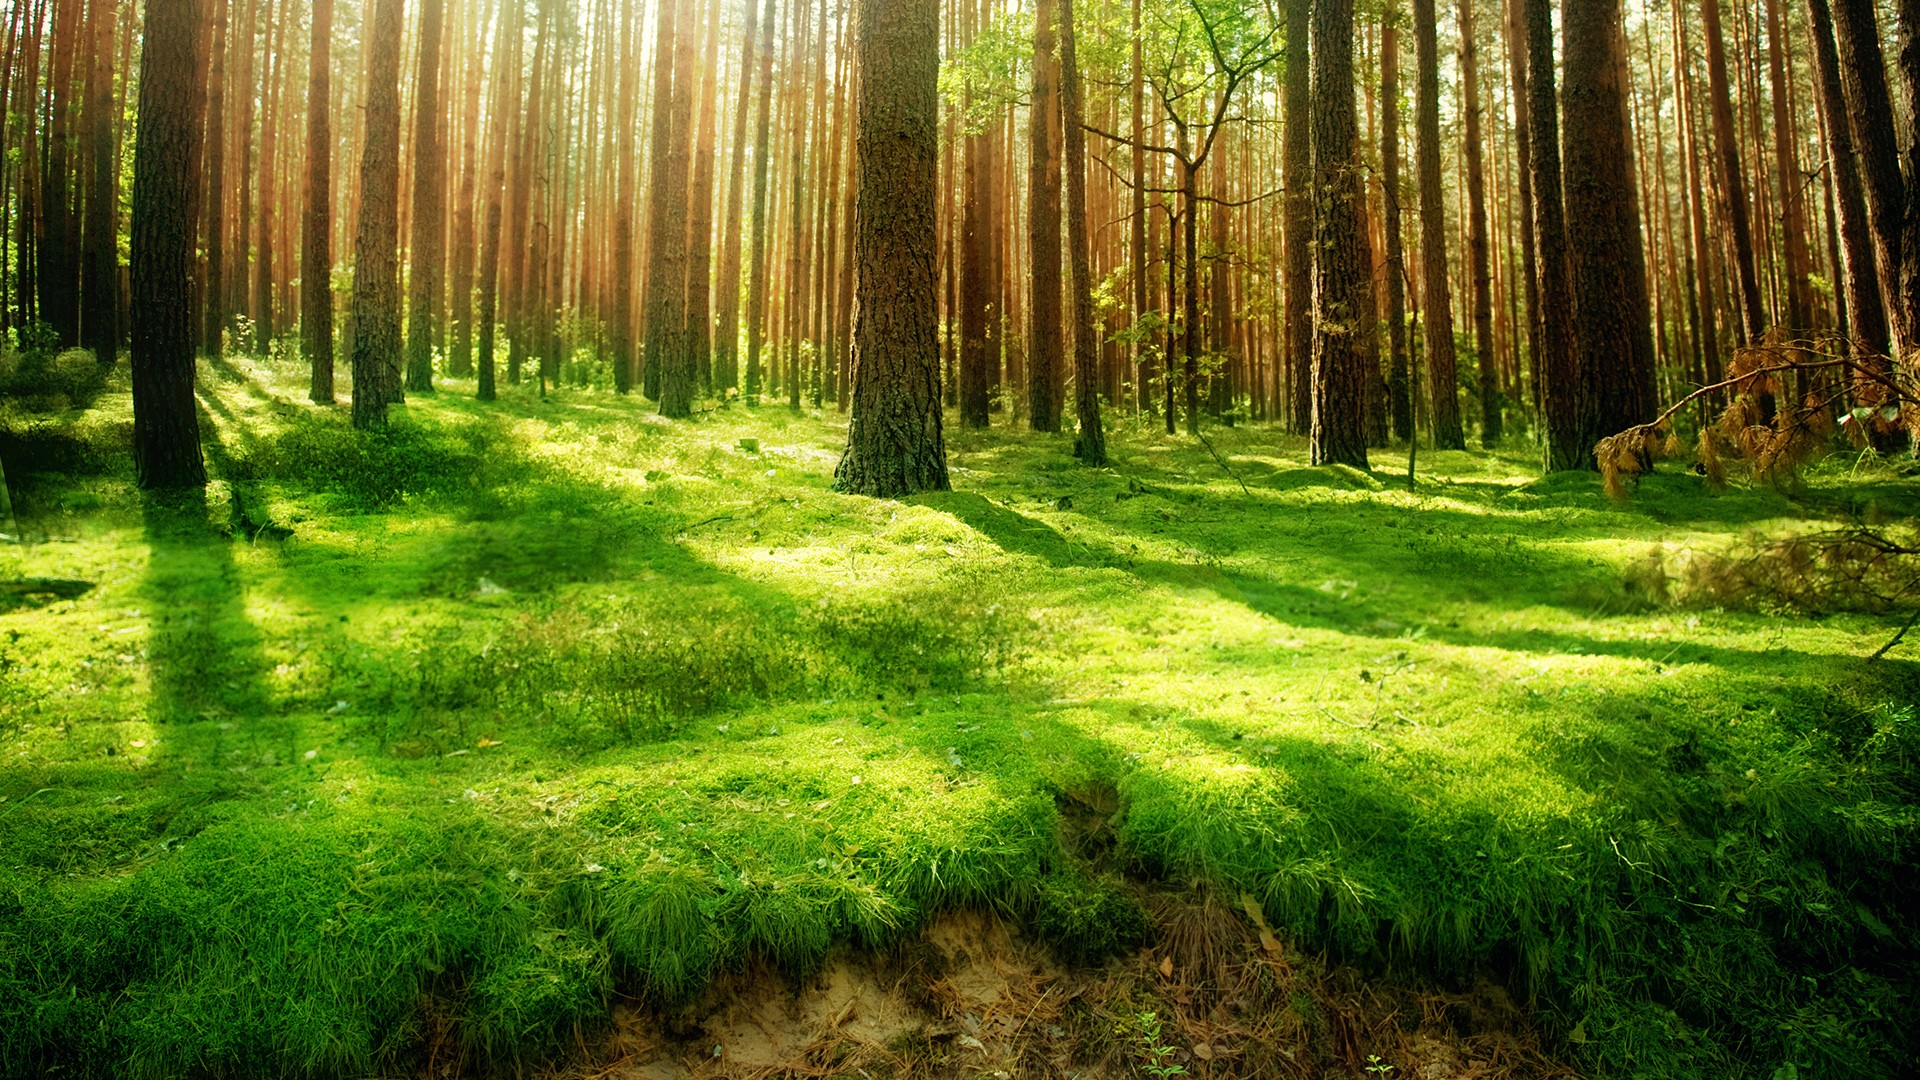 Forest Wallpaper Android Phones Free